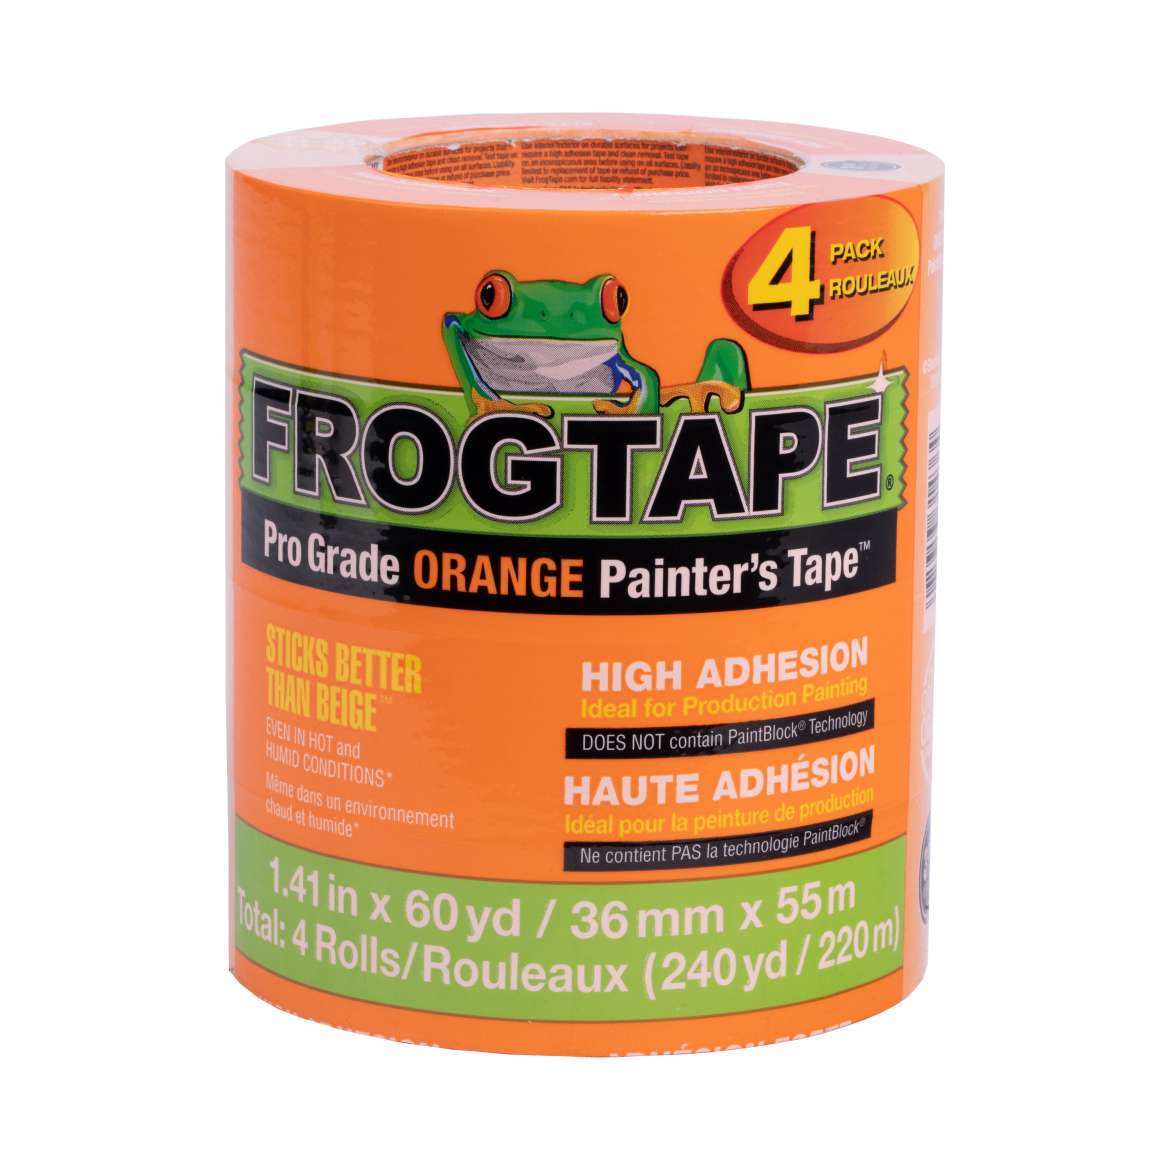 FrogTape® Pro Grade Orange Painter's Tape™